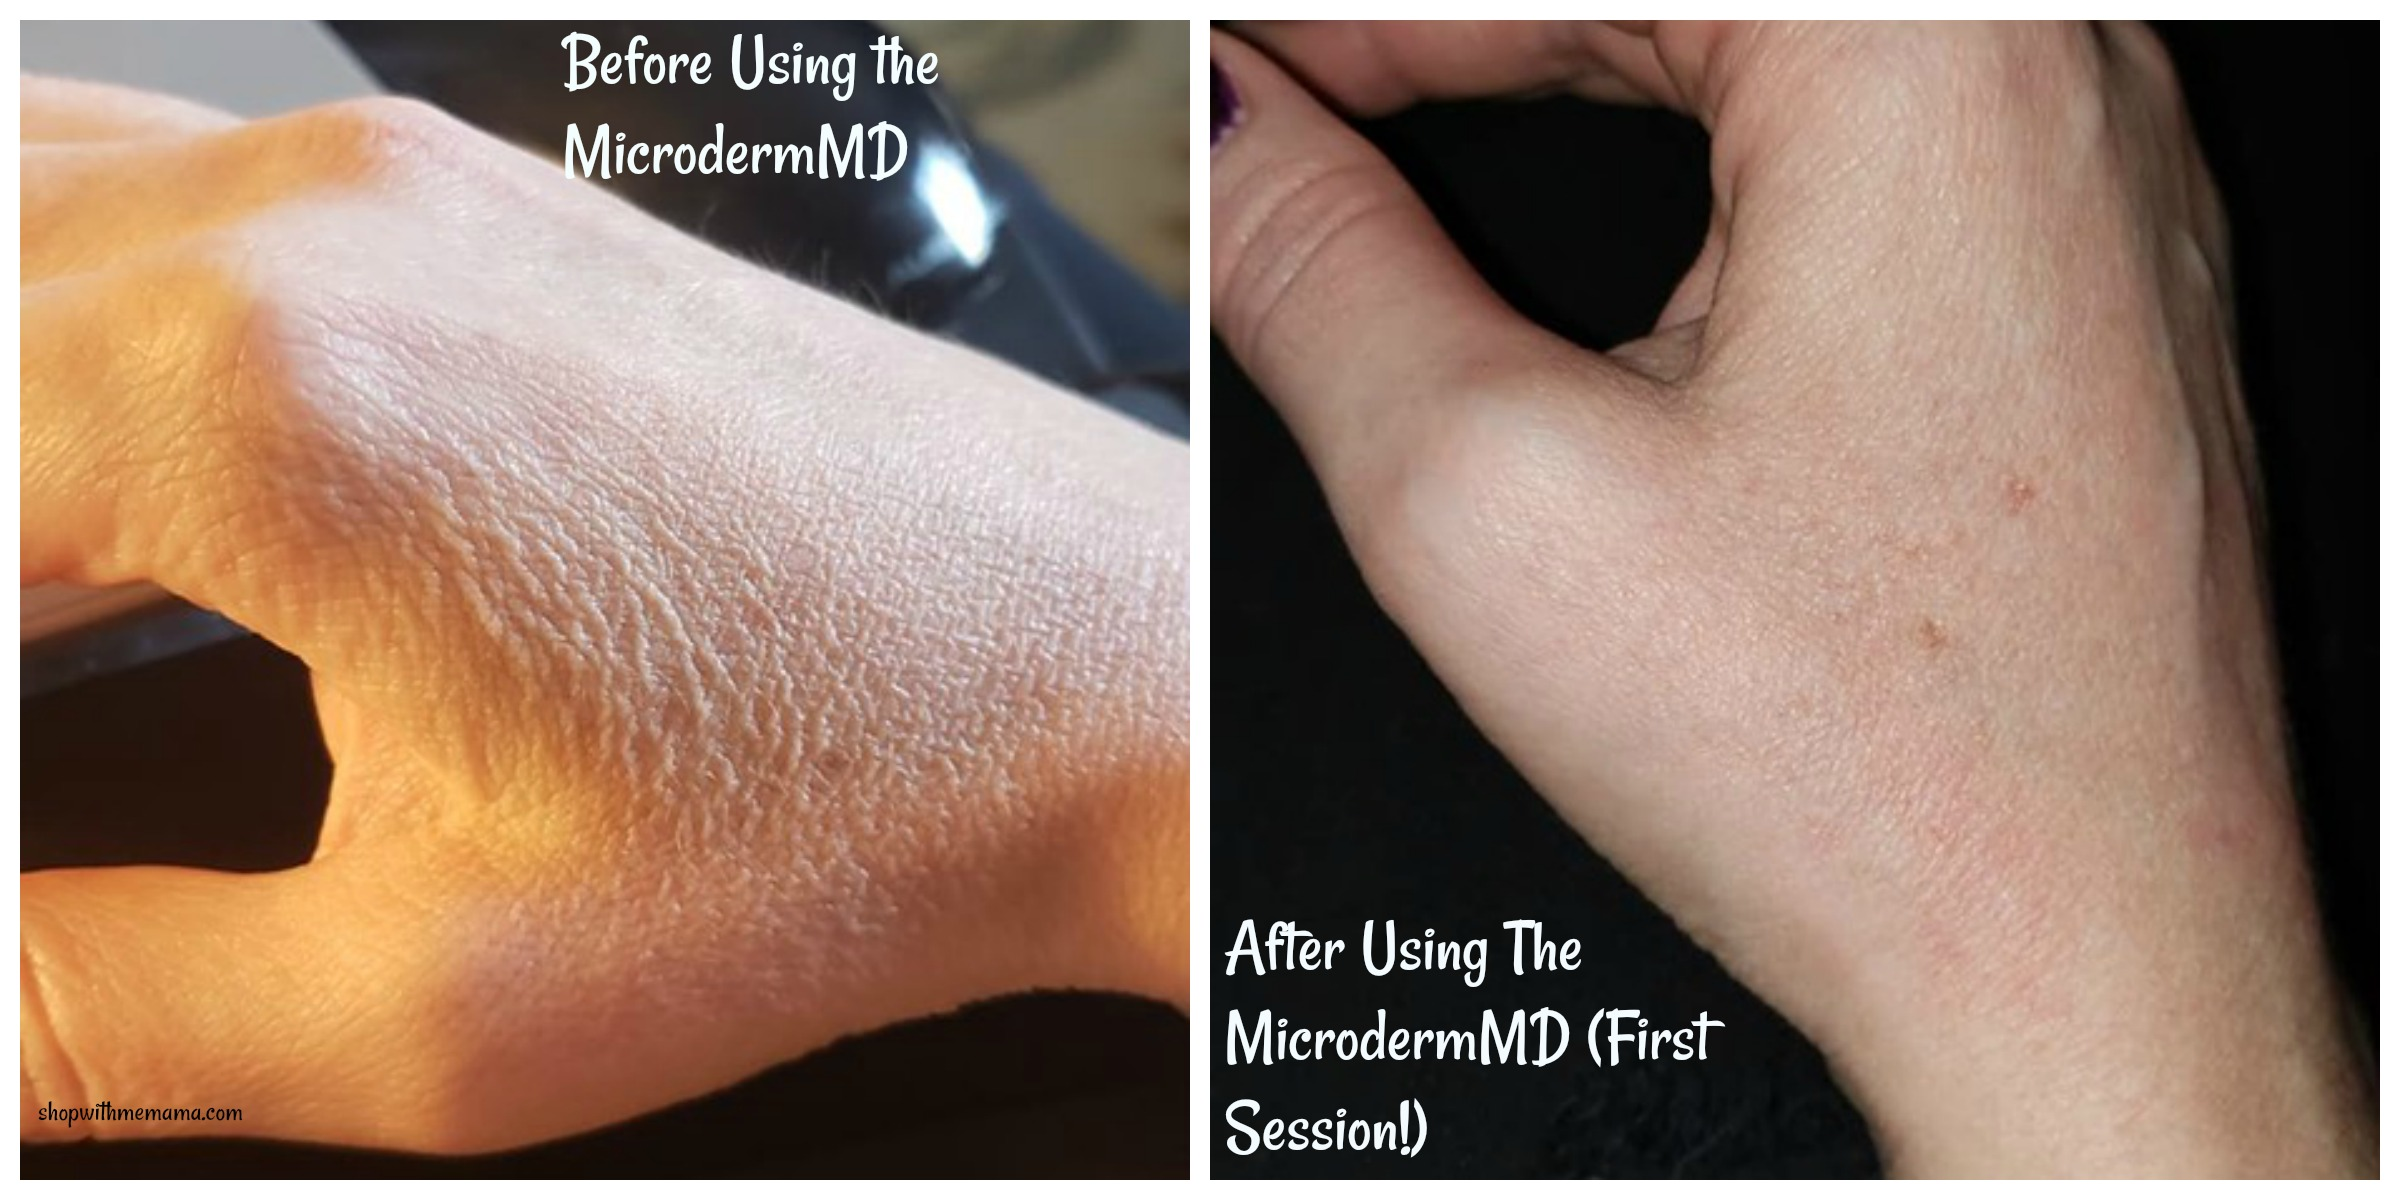 before and after pictures of MicrodermMD